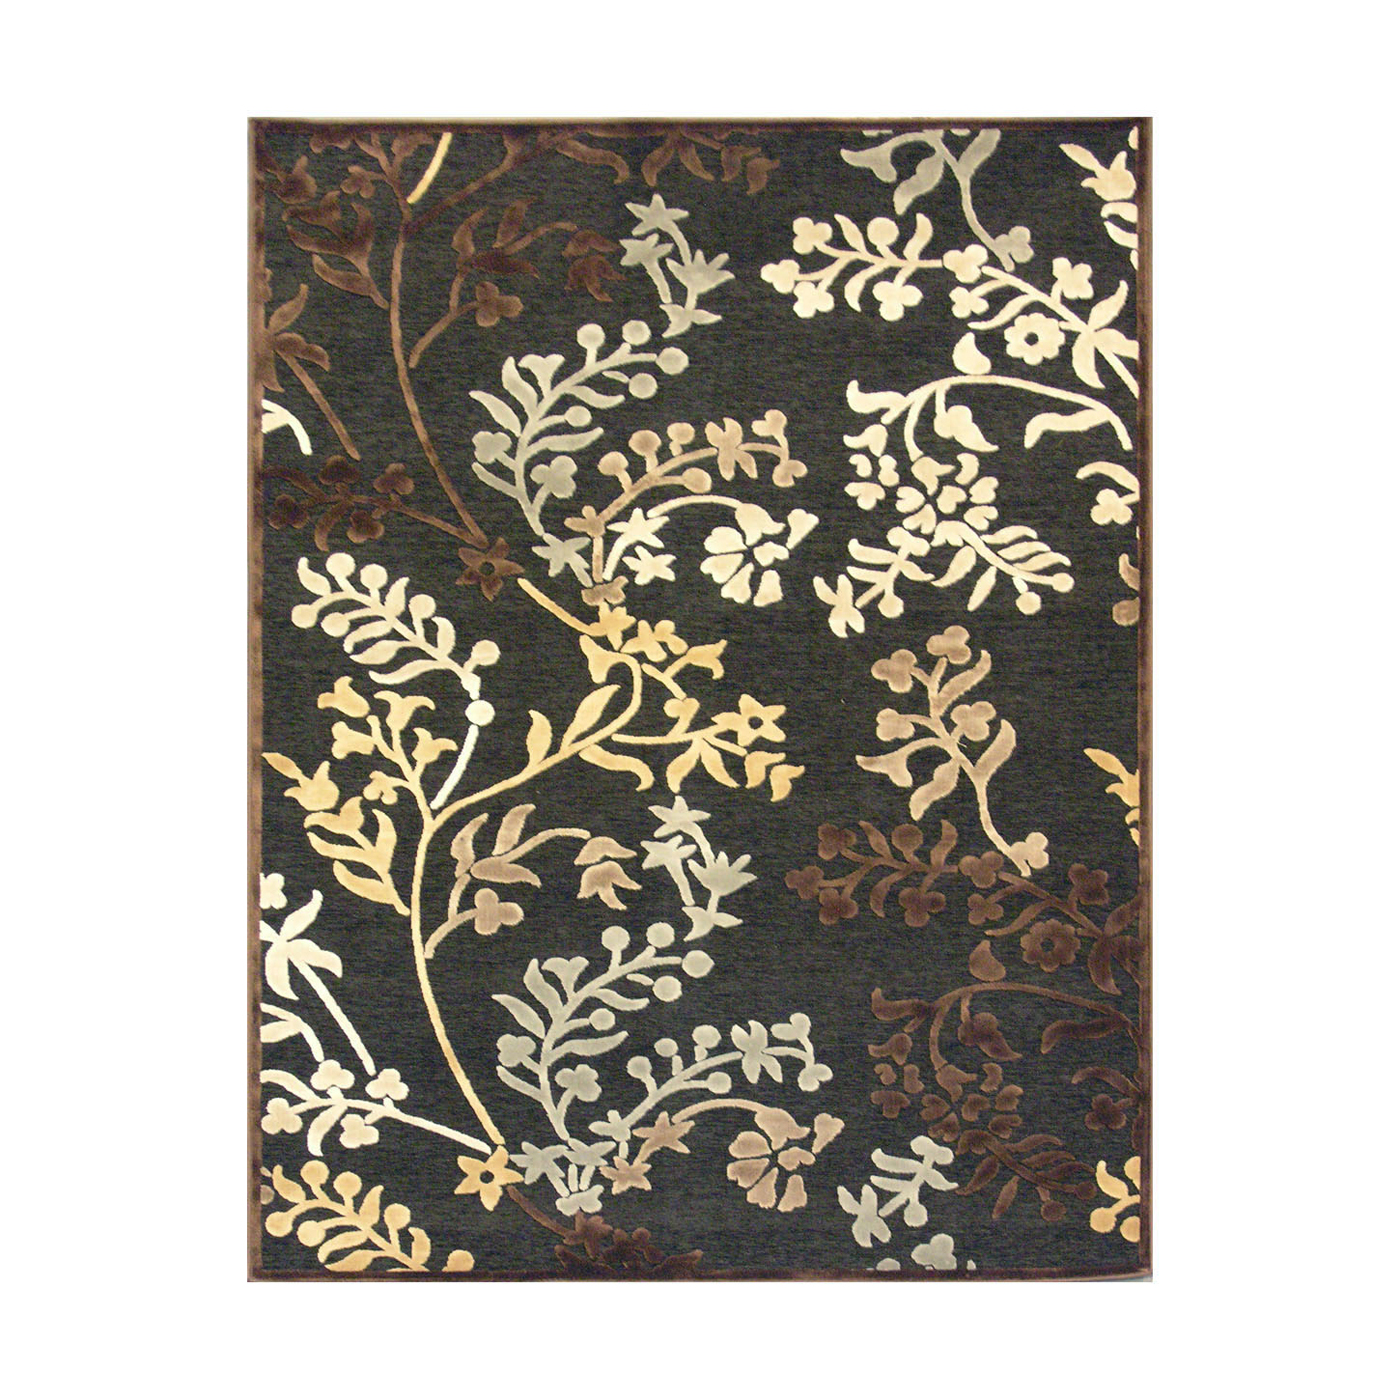 black lowes rugs with floral motif for floor decor ideas